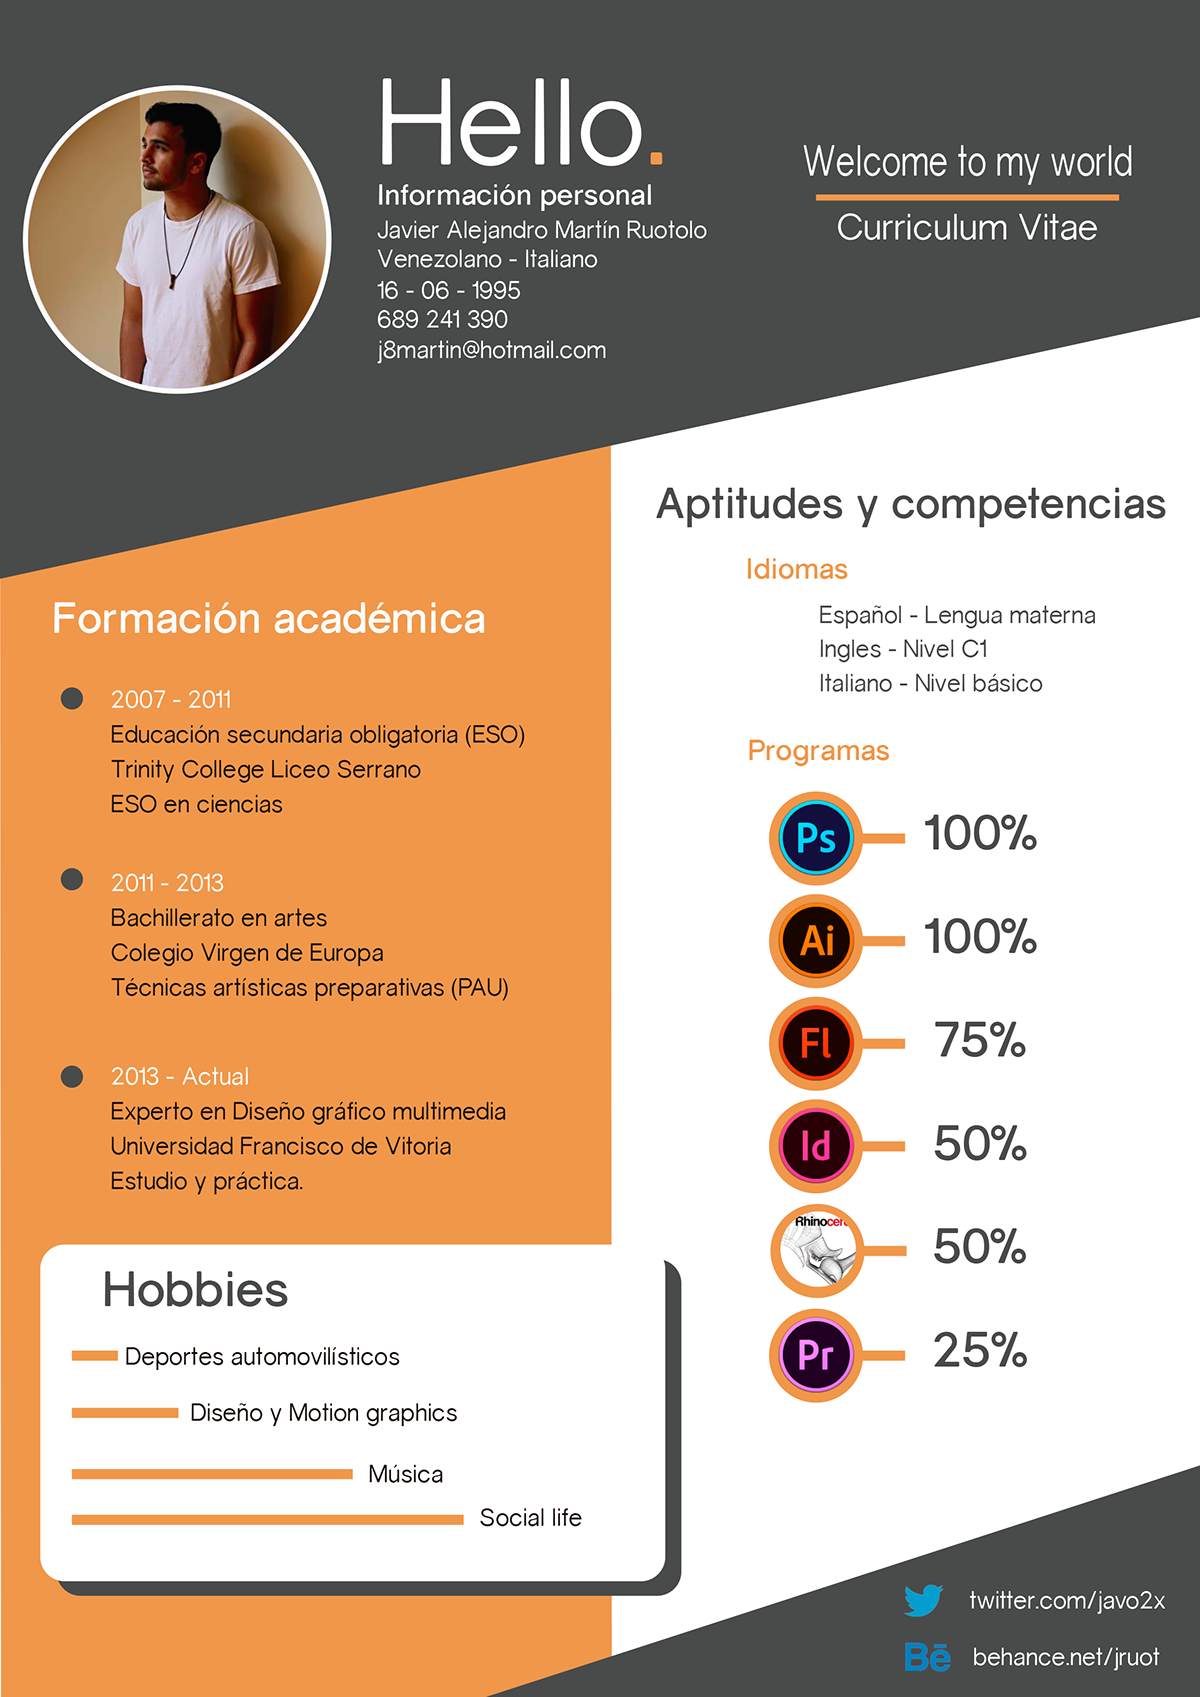 Curriculum Vitae - Welcome to my world on Behance | my works ...